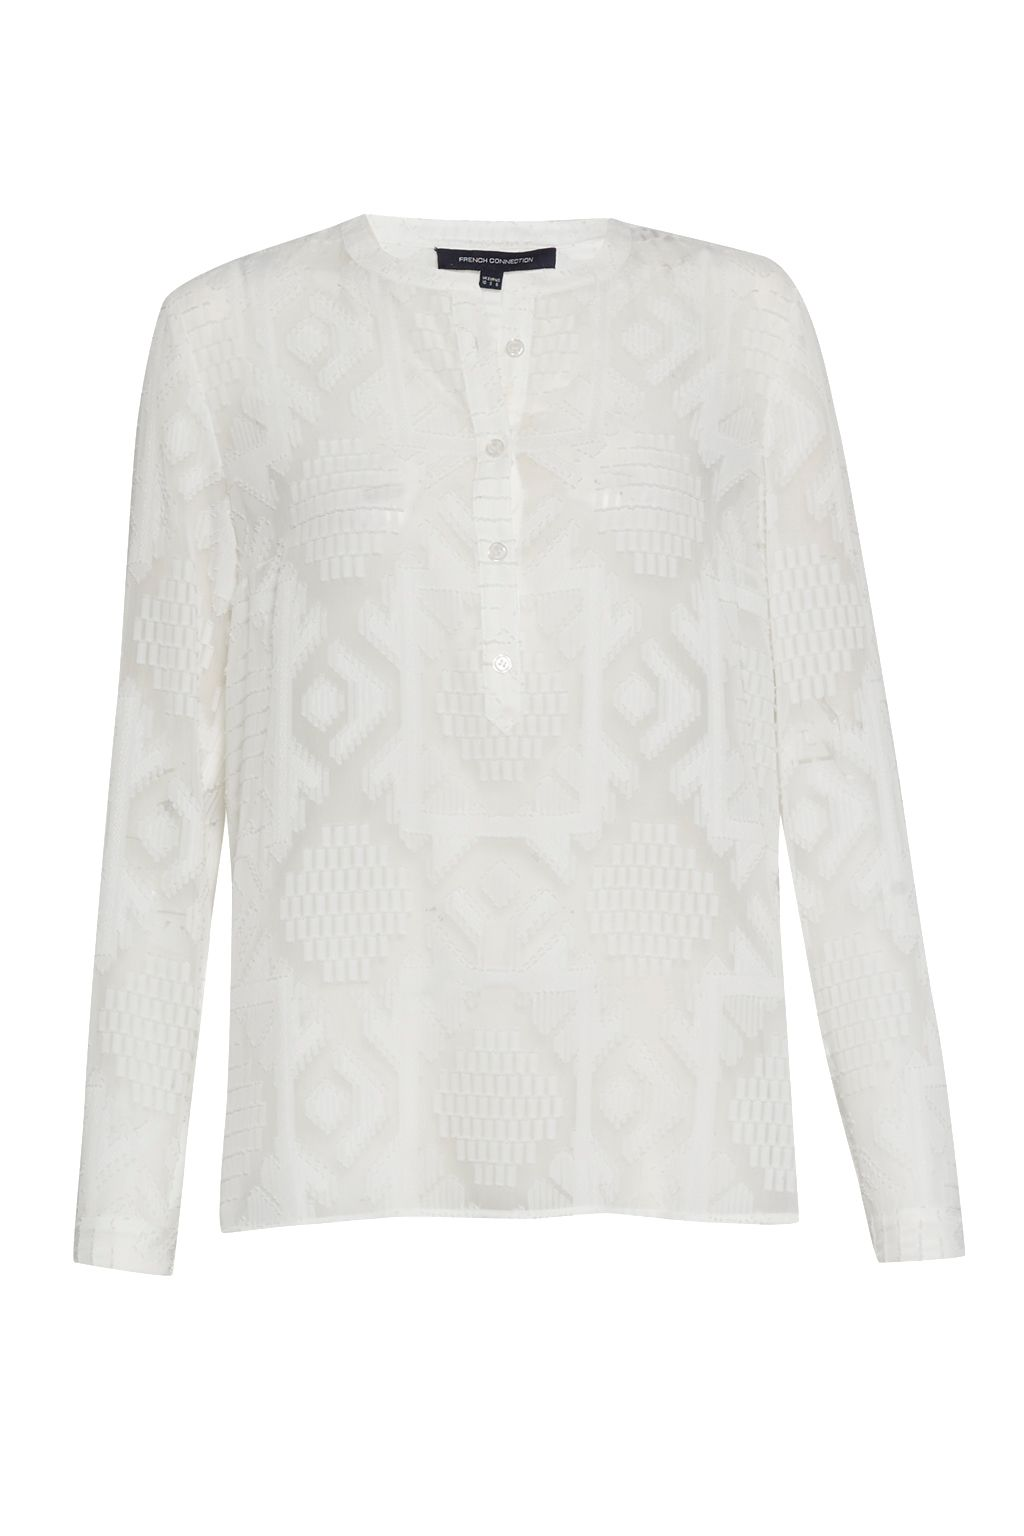 French Connection Edna Fil de Coupe Collarless Shirt, White